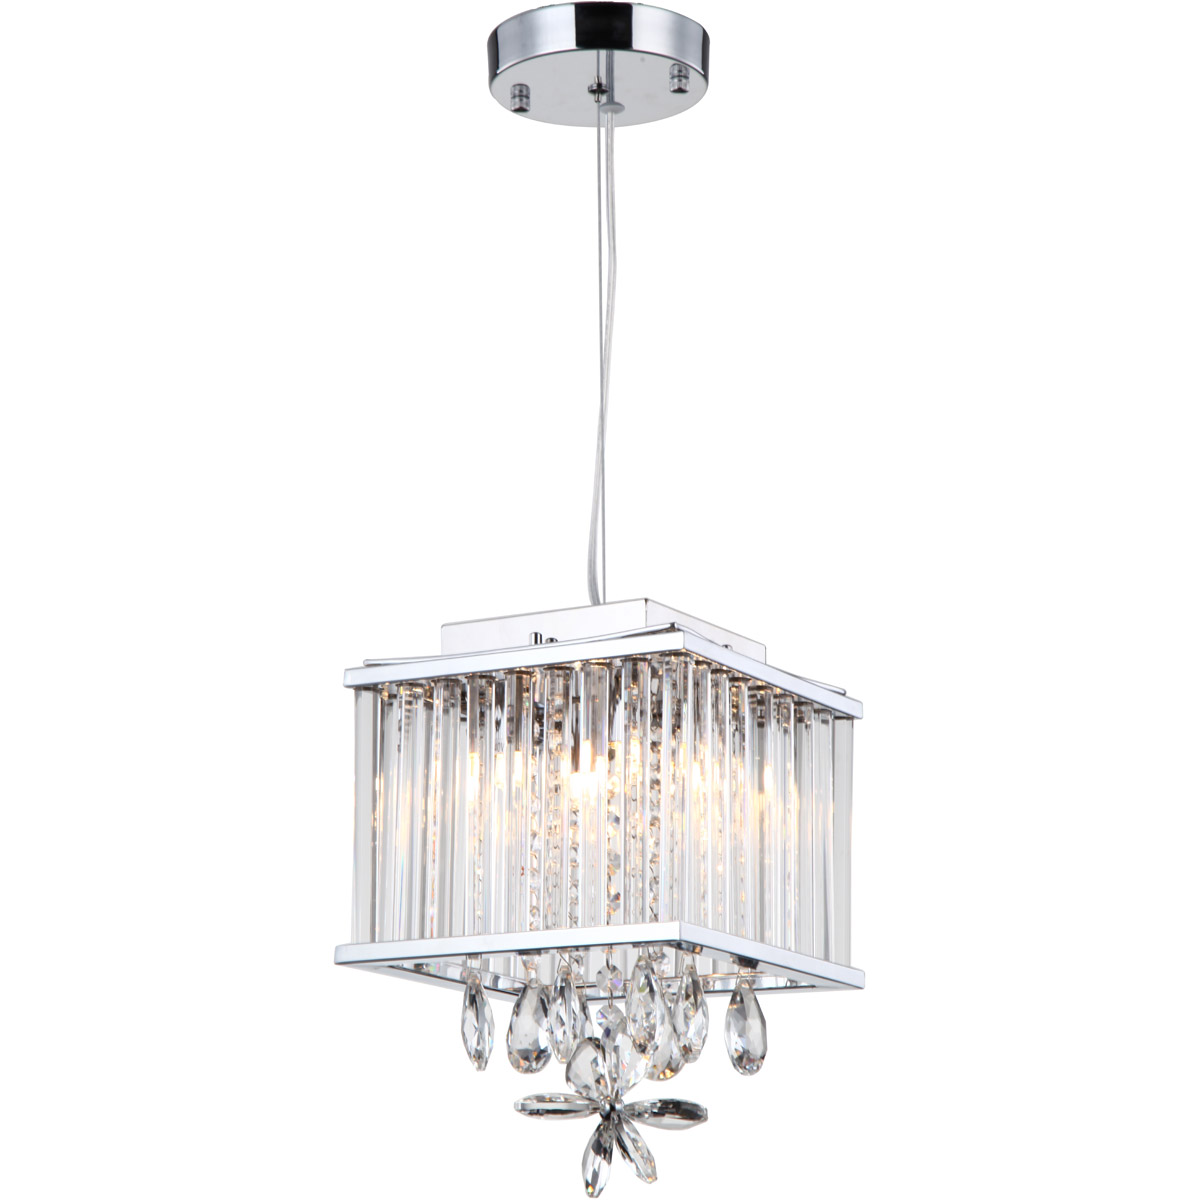 Details about zeev lighting mp40020 4 ch cl easton mini pendant chrome